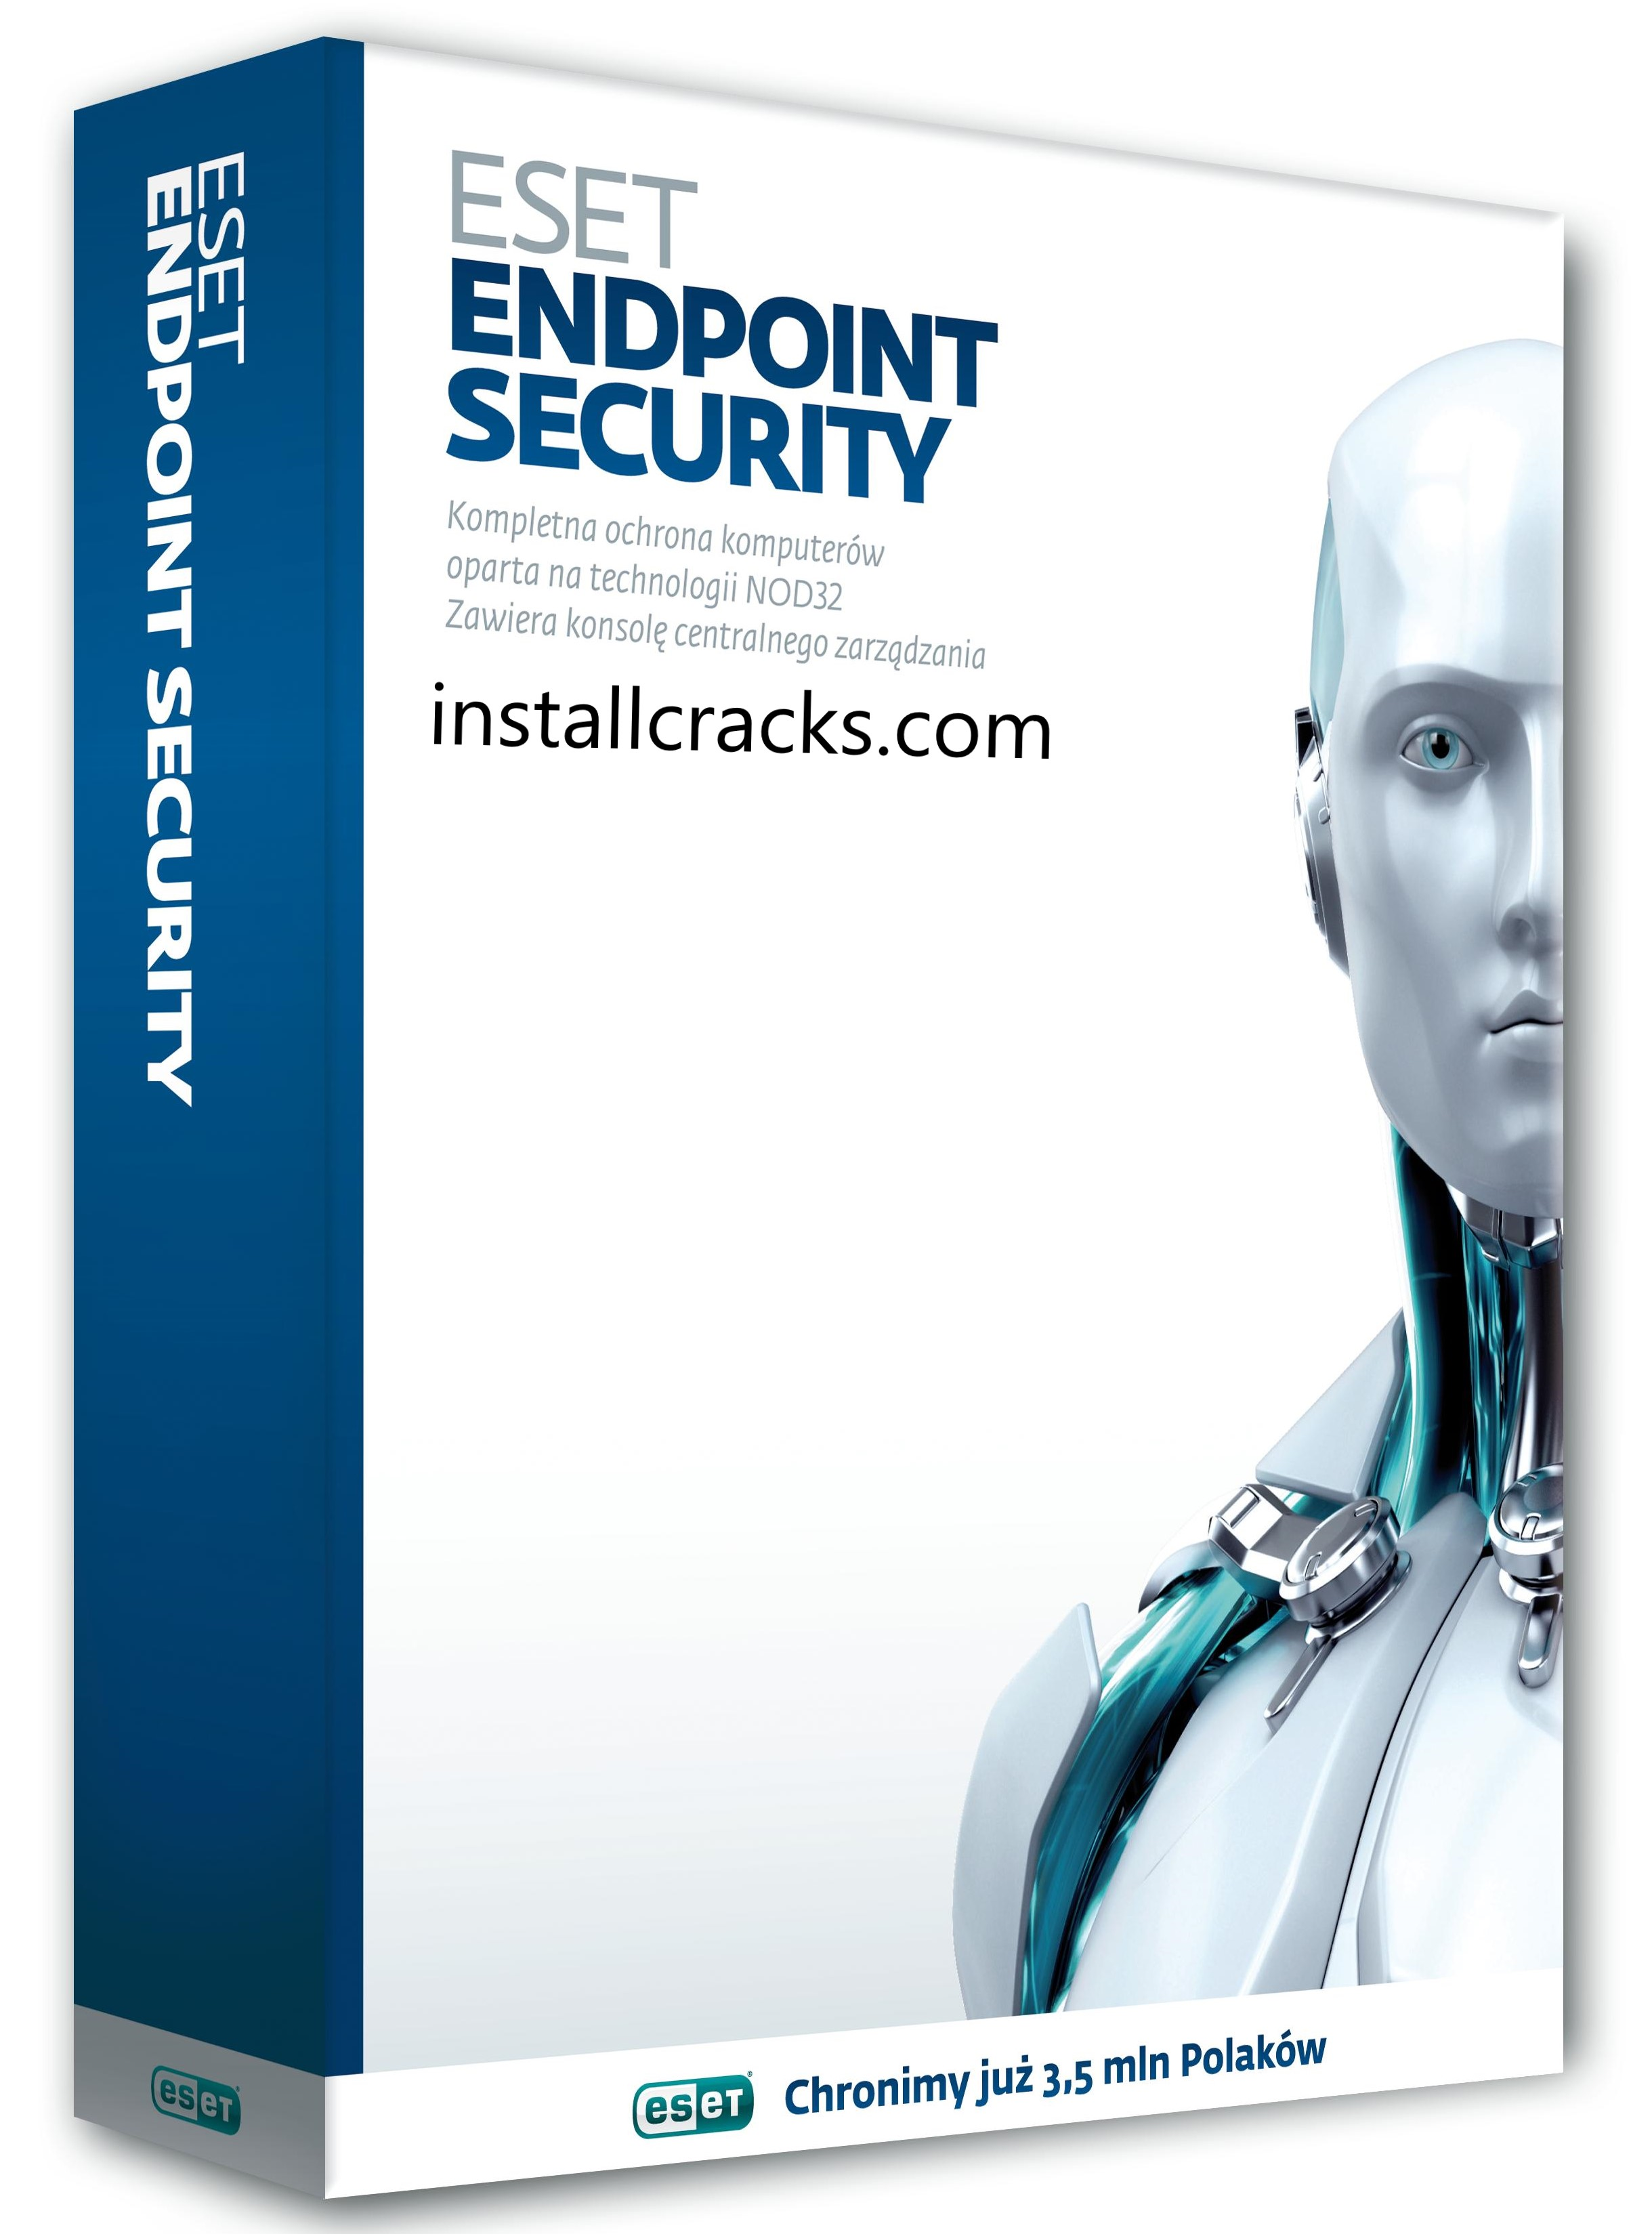 ESET Endpoint Security 2019 Crack + License Key Free Download